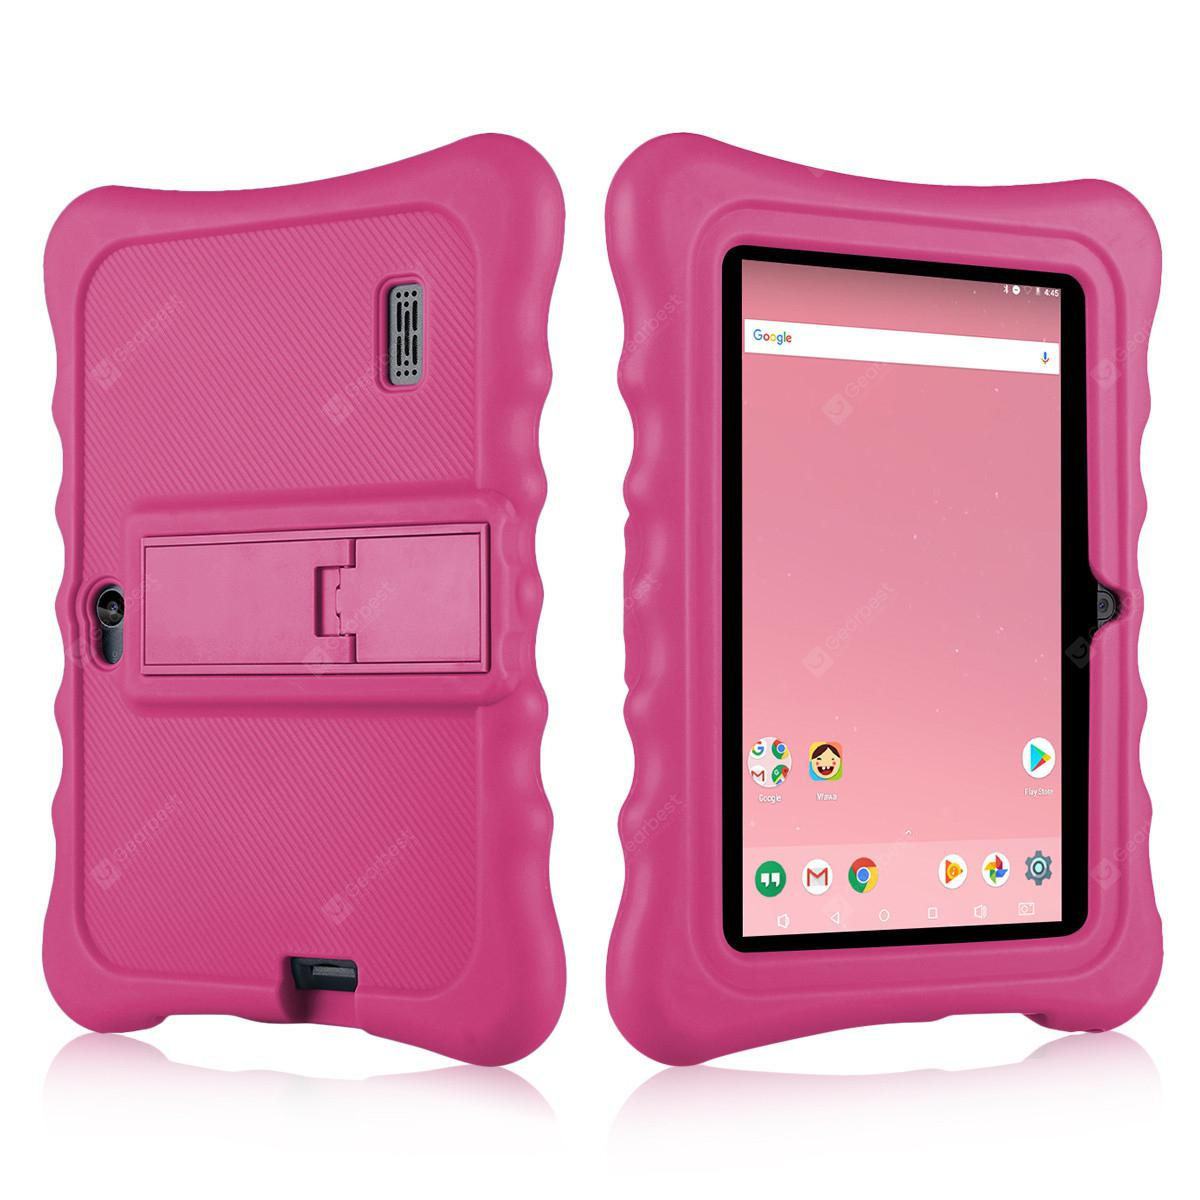 "Ainol Q88 Kids Android 7.1 OS Tablet 7"" Display 1G RAM 8 GB ROM Light Weight Portable Kid-Proof Shock-Proof Silicone Case Kickstand Available With iWawa For Kids Education Entertainment"